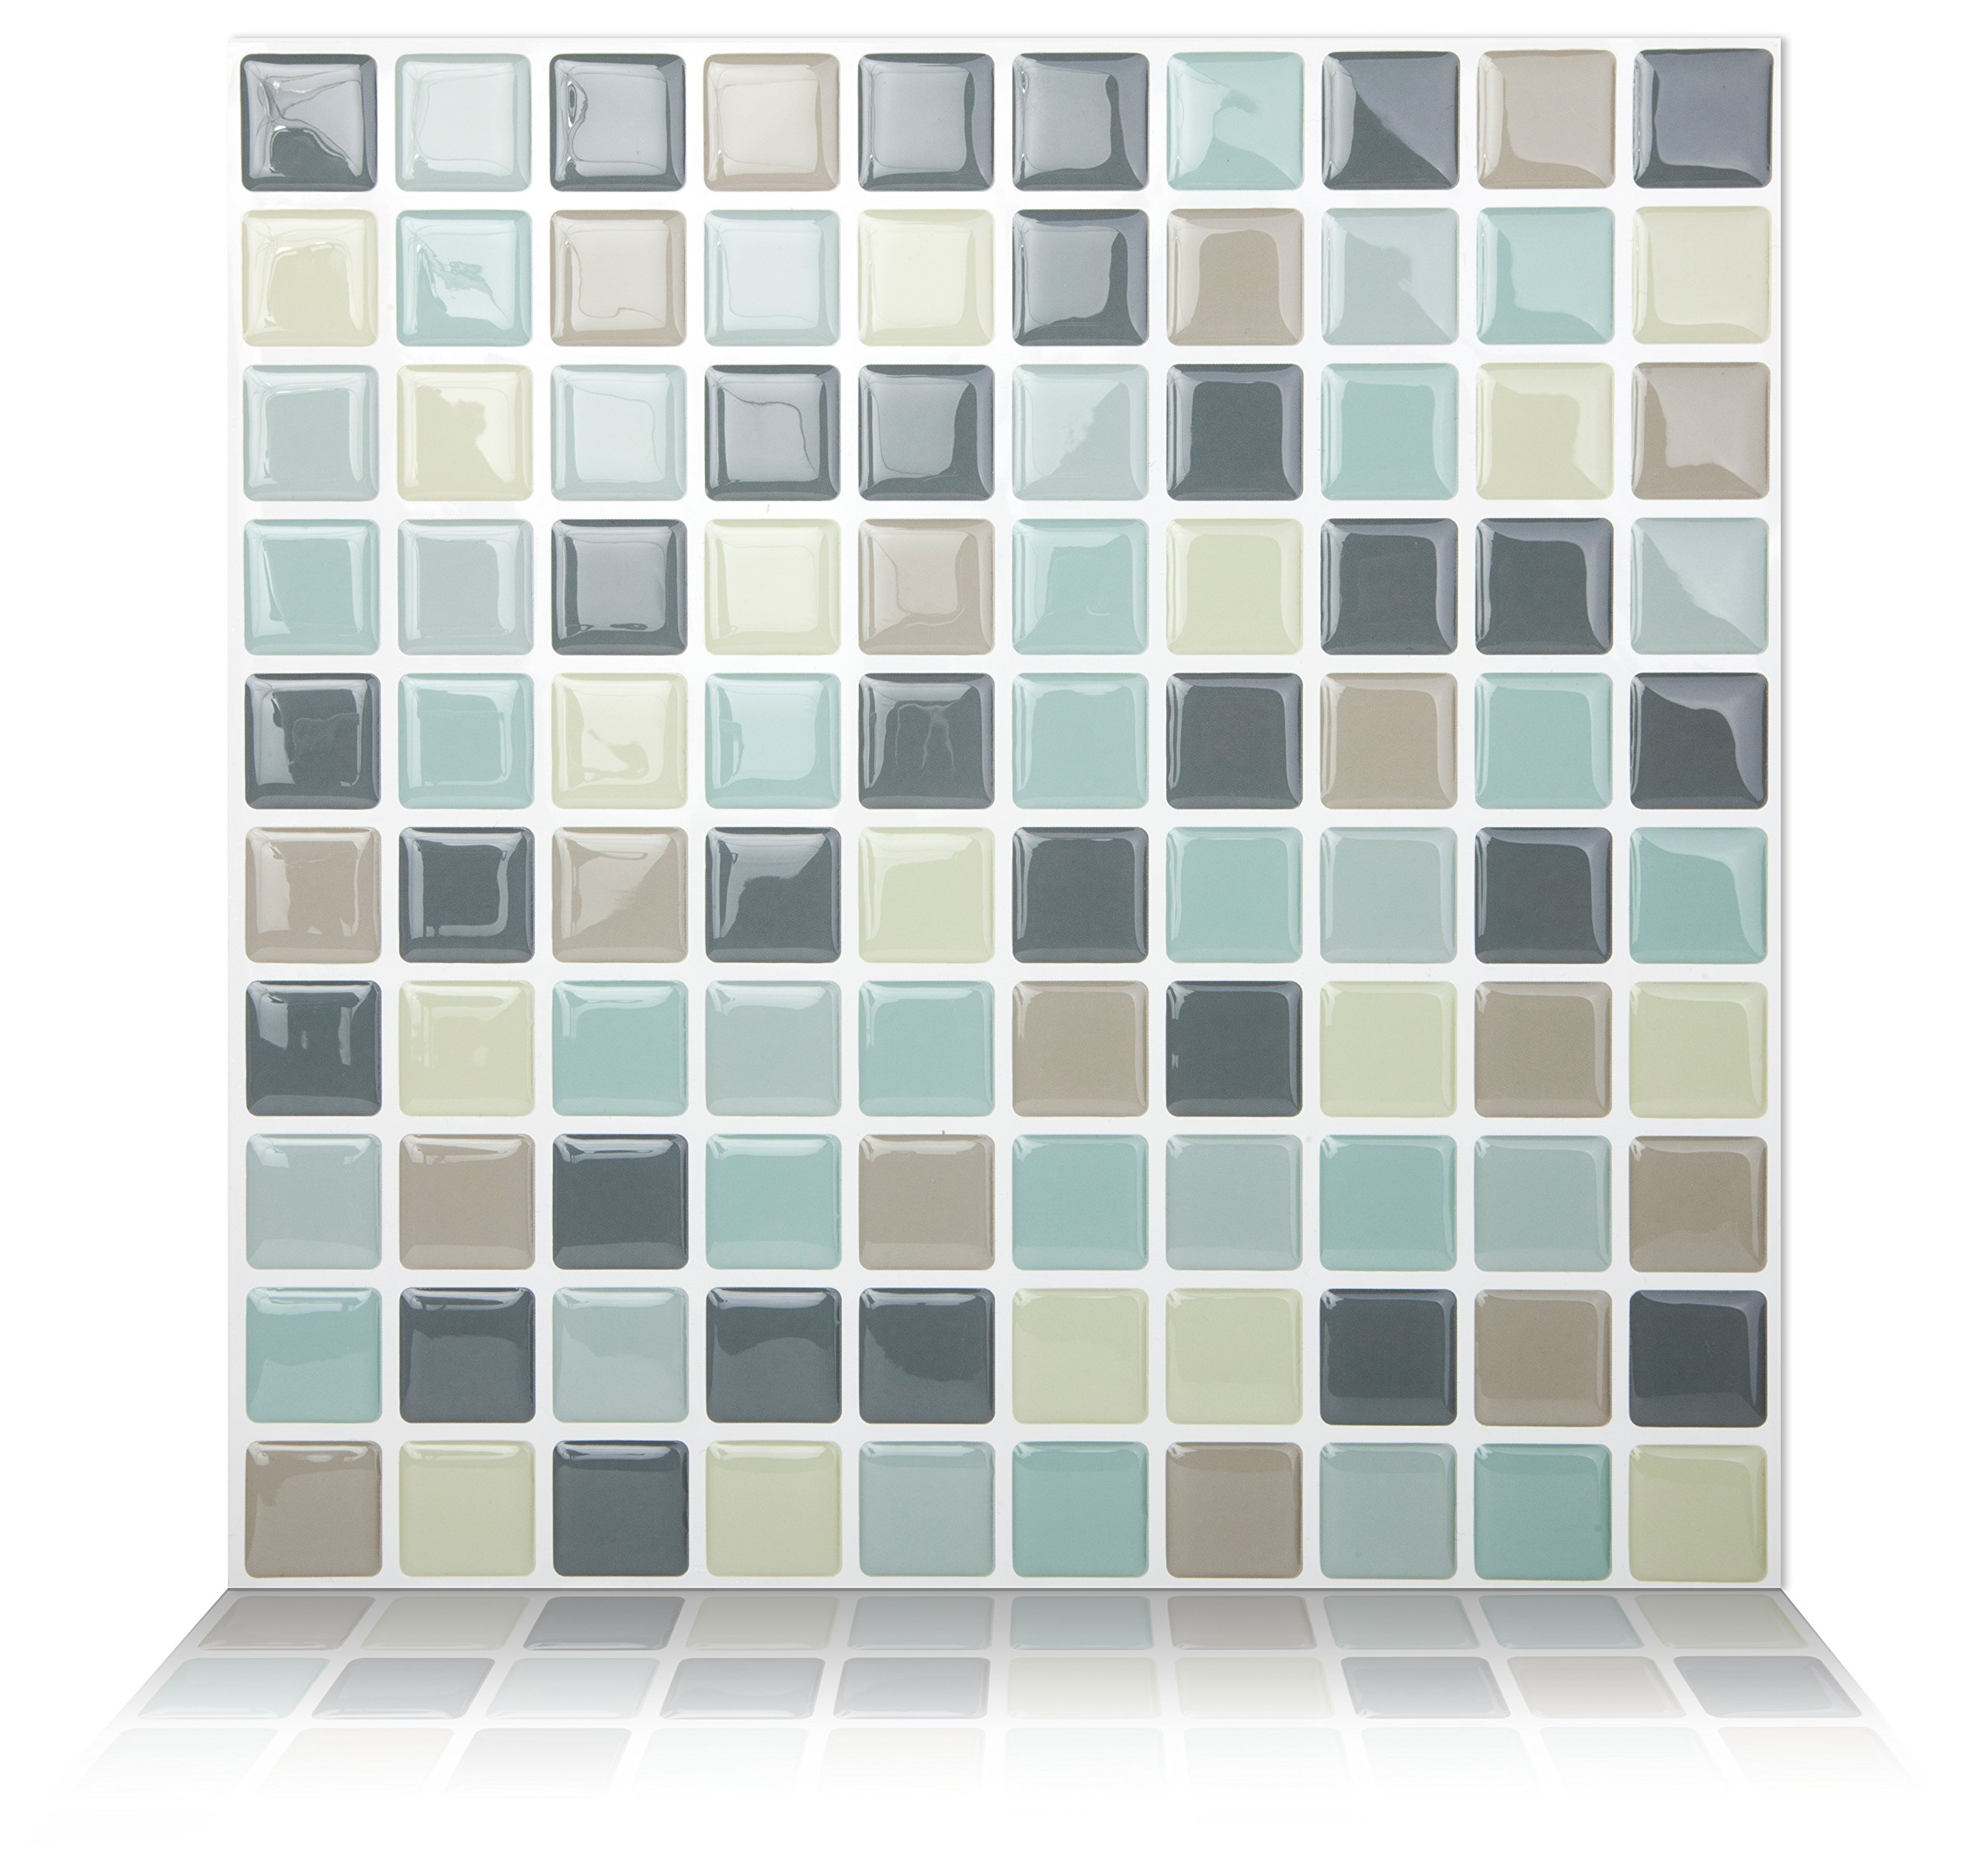 Tic Tac Tile Anti-mold Peel and Stick Wall Tiles in Mosaic Mintgray (10 tiles)